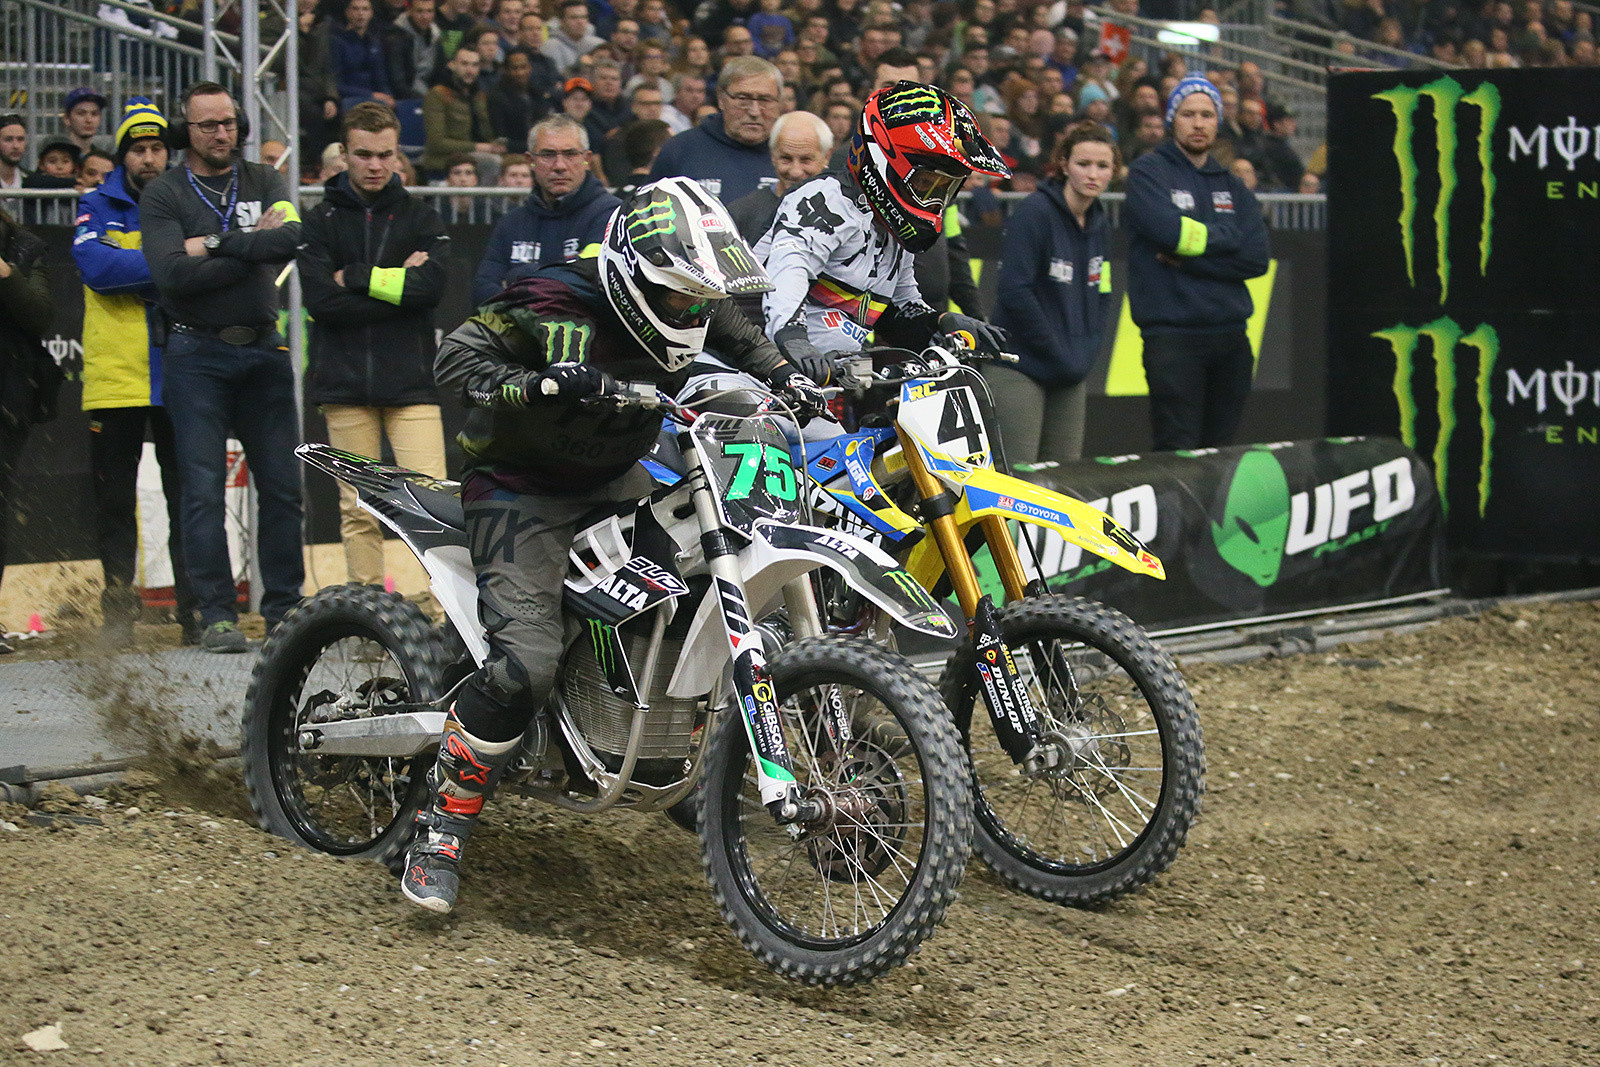 Josh Hill and Ricky Carmichael were the final two in a set of special match races. The Alta is quick off the line.